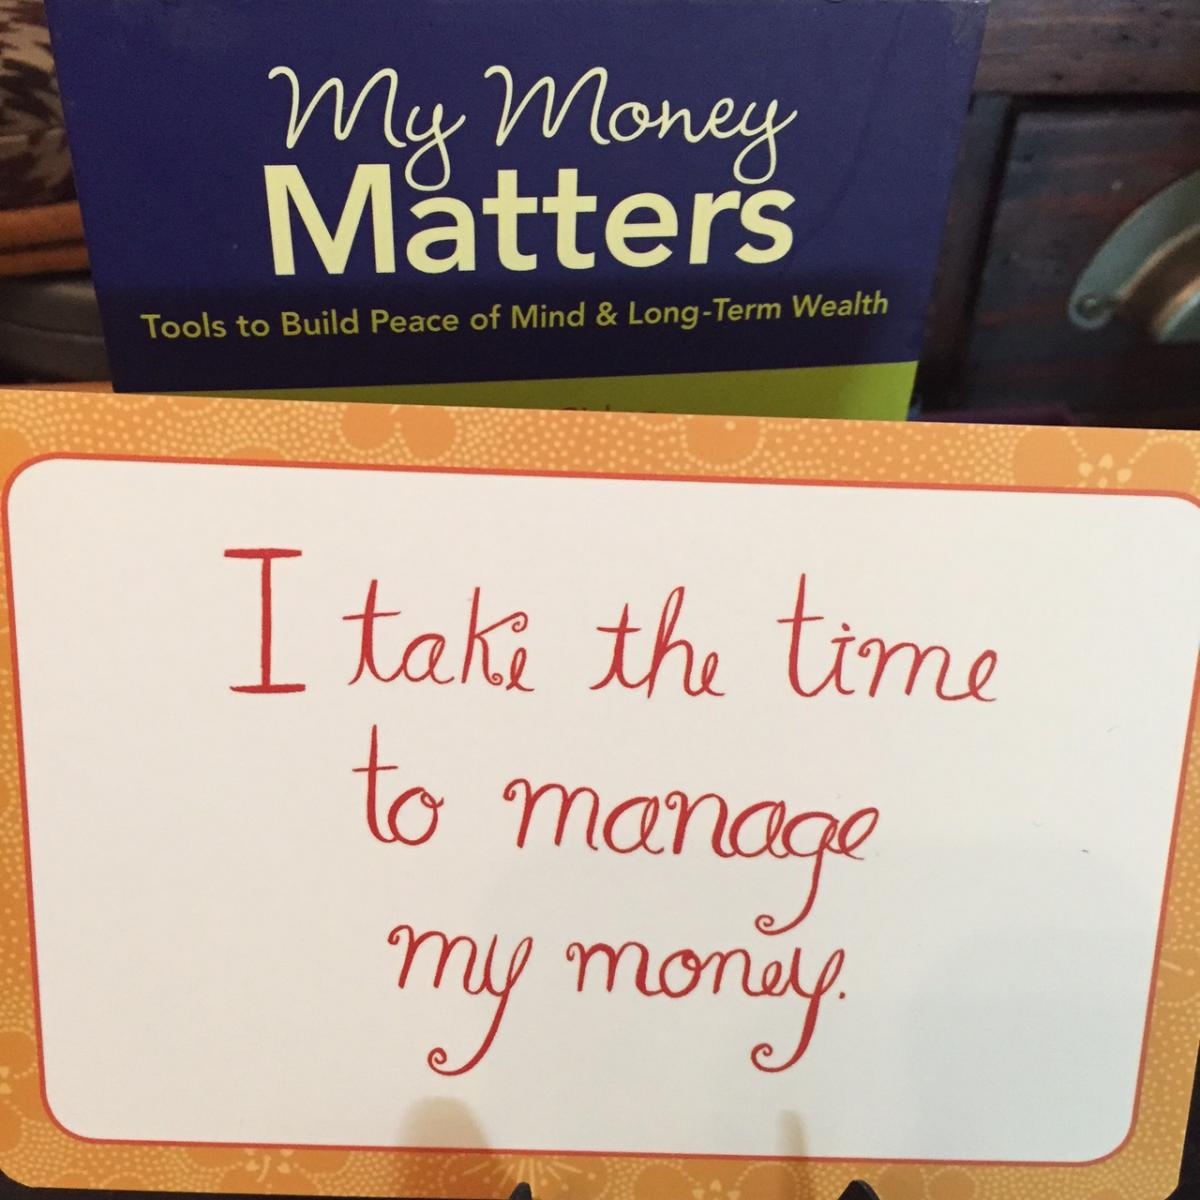 My Money Matters Affirmation Card, from Galia Gachon Down to Earth Finance